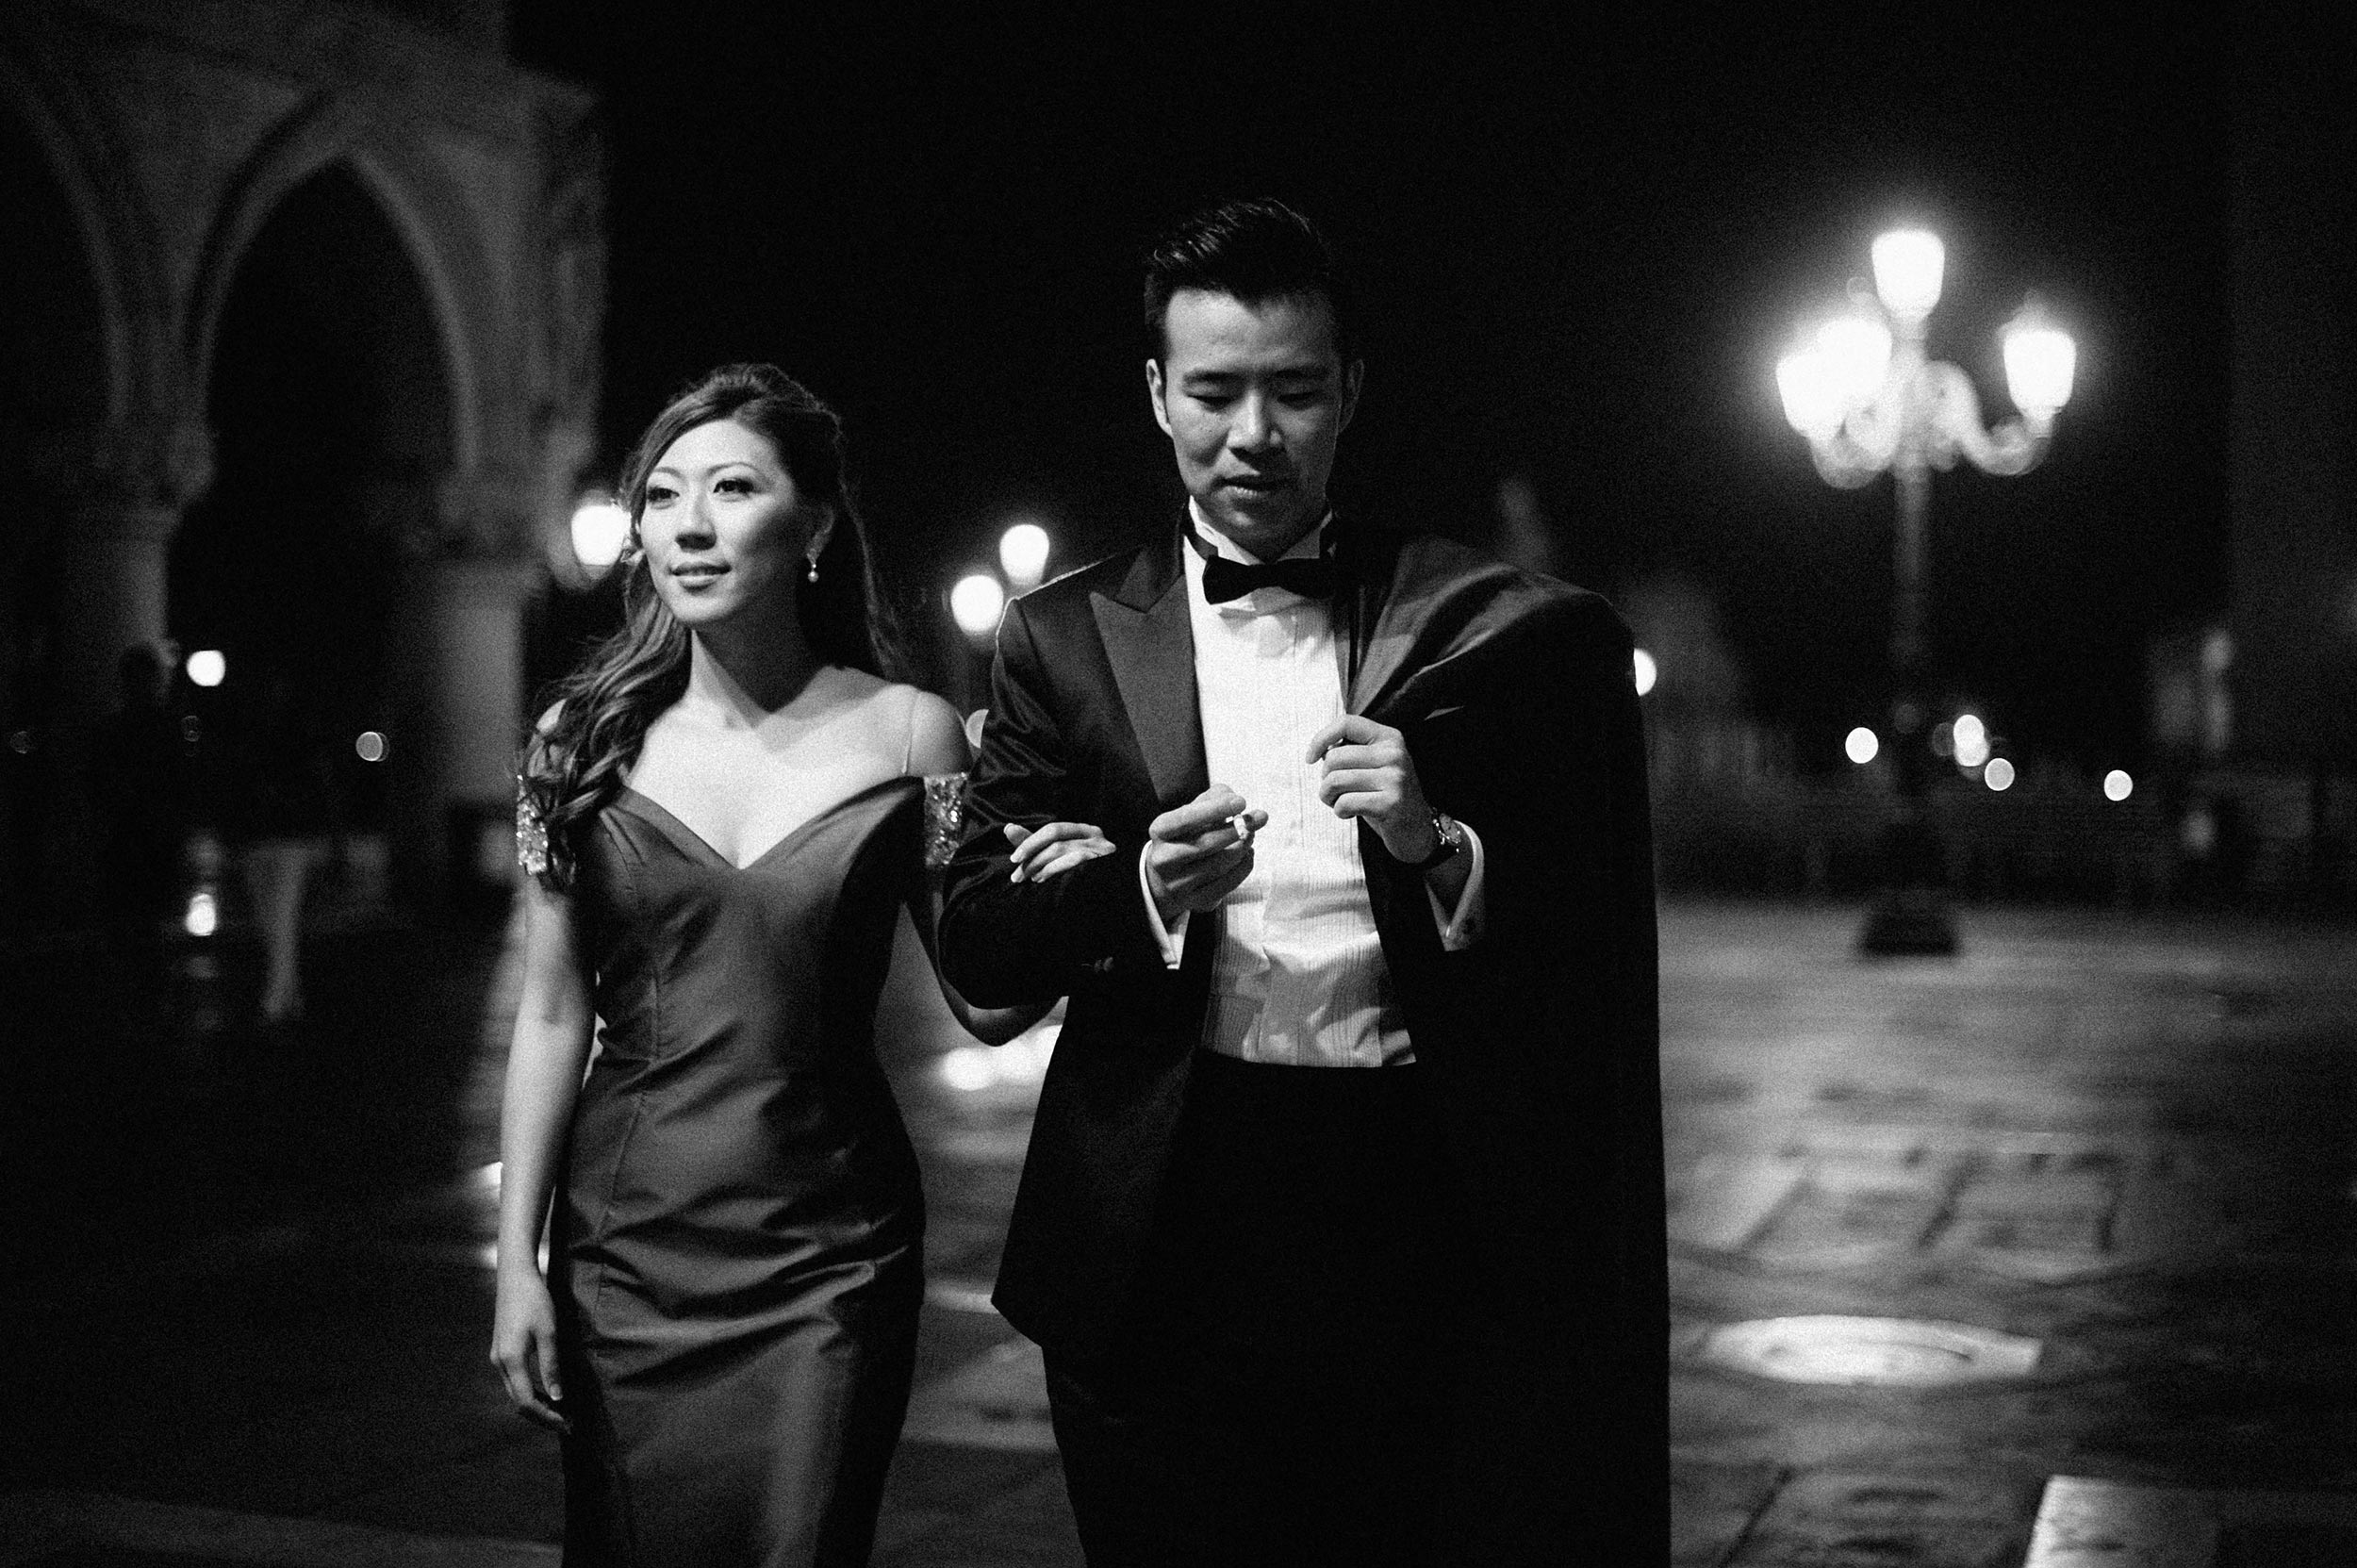 an-elegant-chinese-couple-in-piazza-san-marco-venice-black-and-white-wedding-photography.jpg